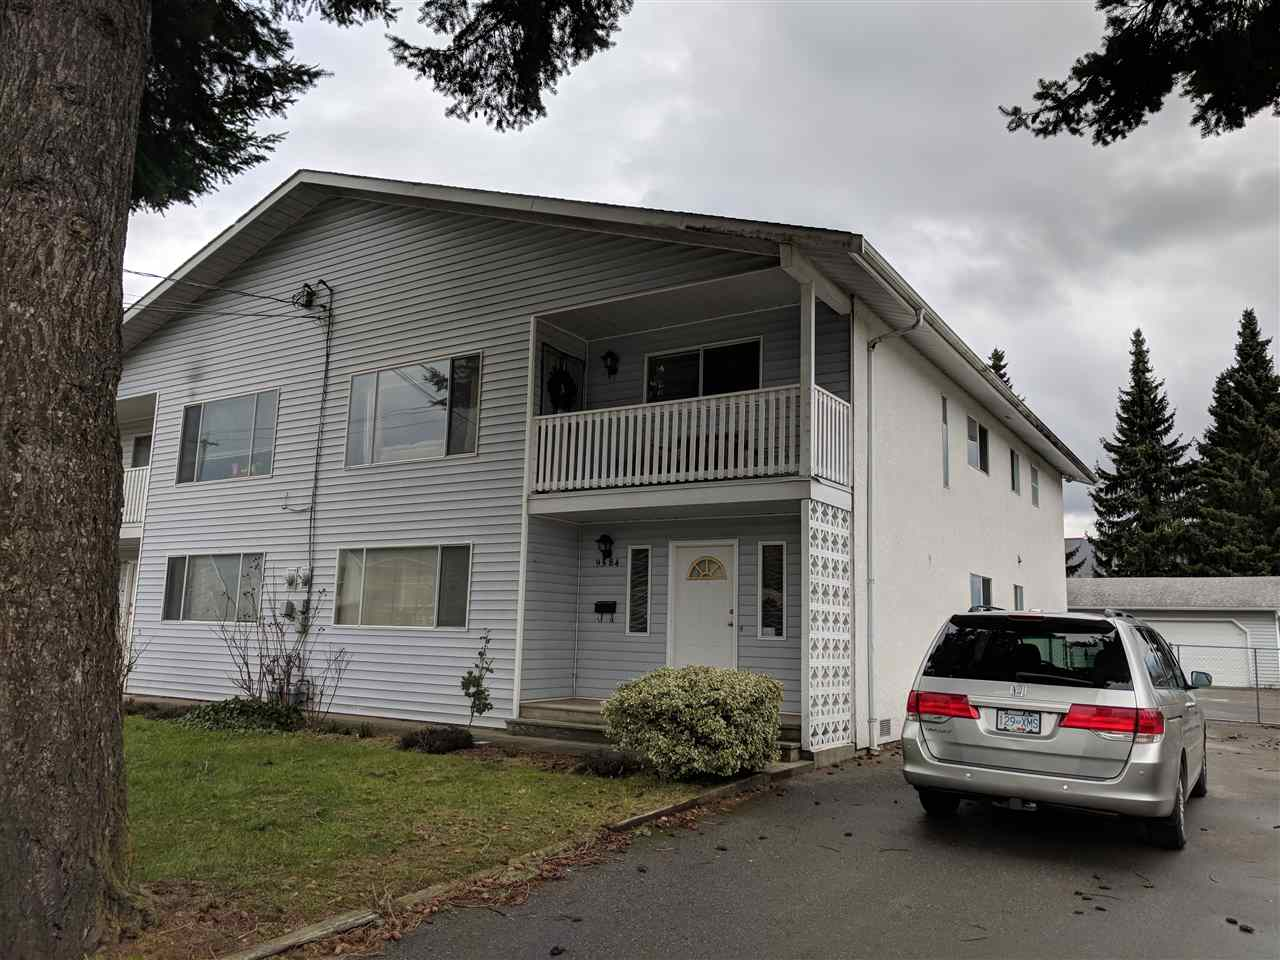 Main Photo: 9584 - 9586 WILLIAMS Street in Chilliwack: Chilliwack N Yale-Well House Duplex for sale : MLS®# R2244551